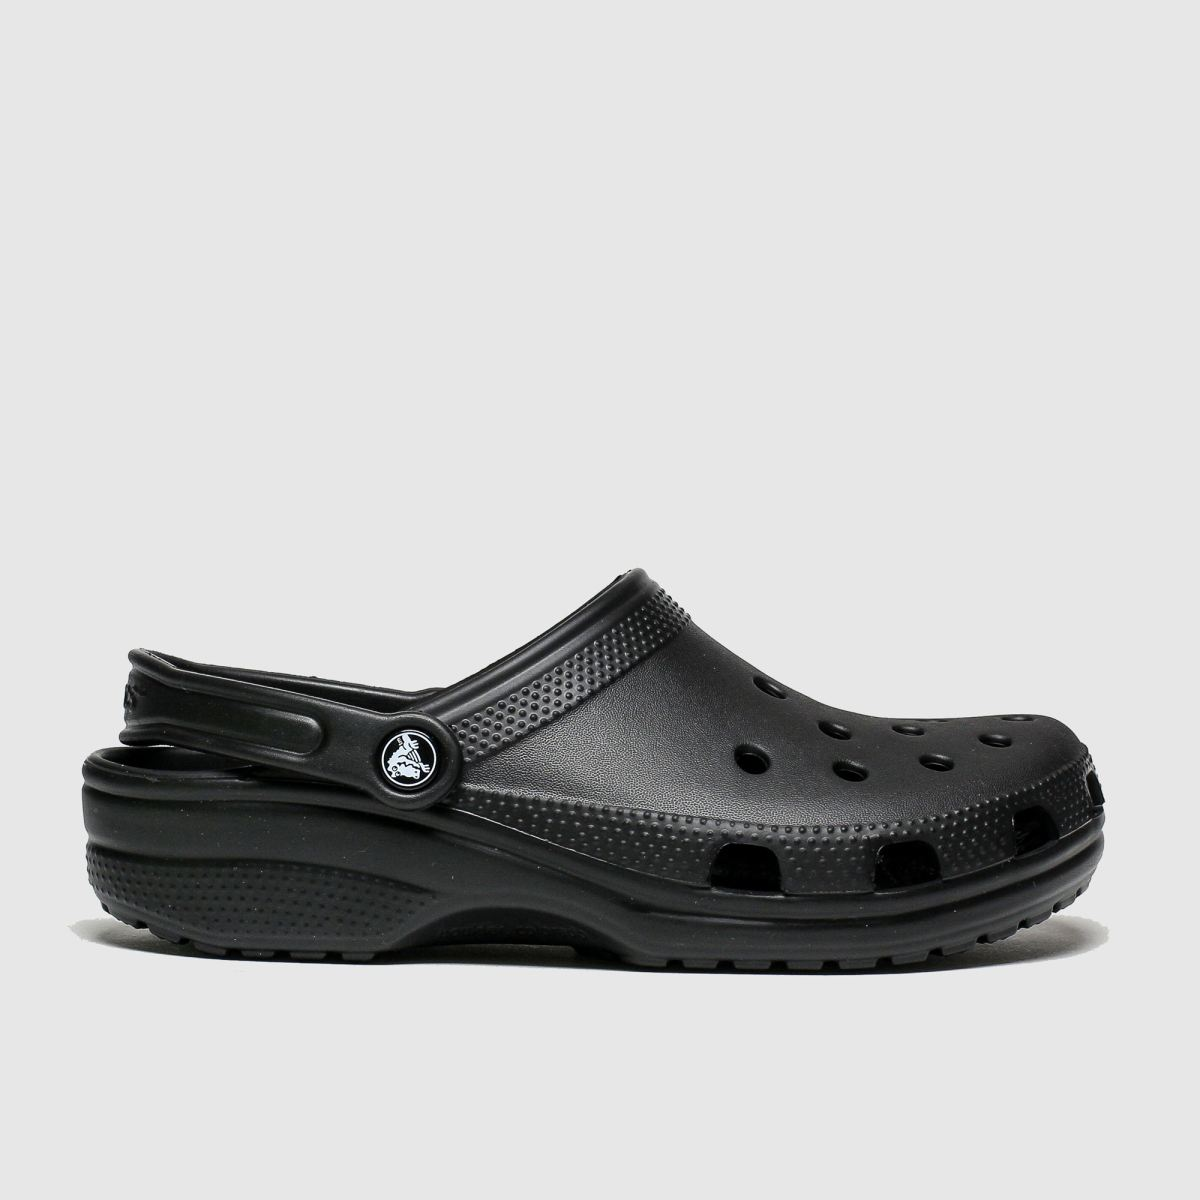 Crocs Black Classic Clog Sandals